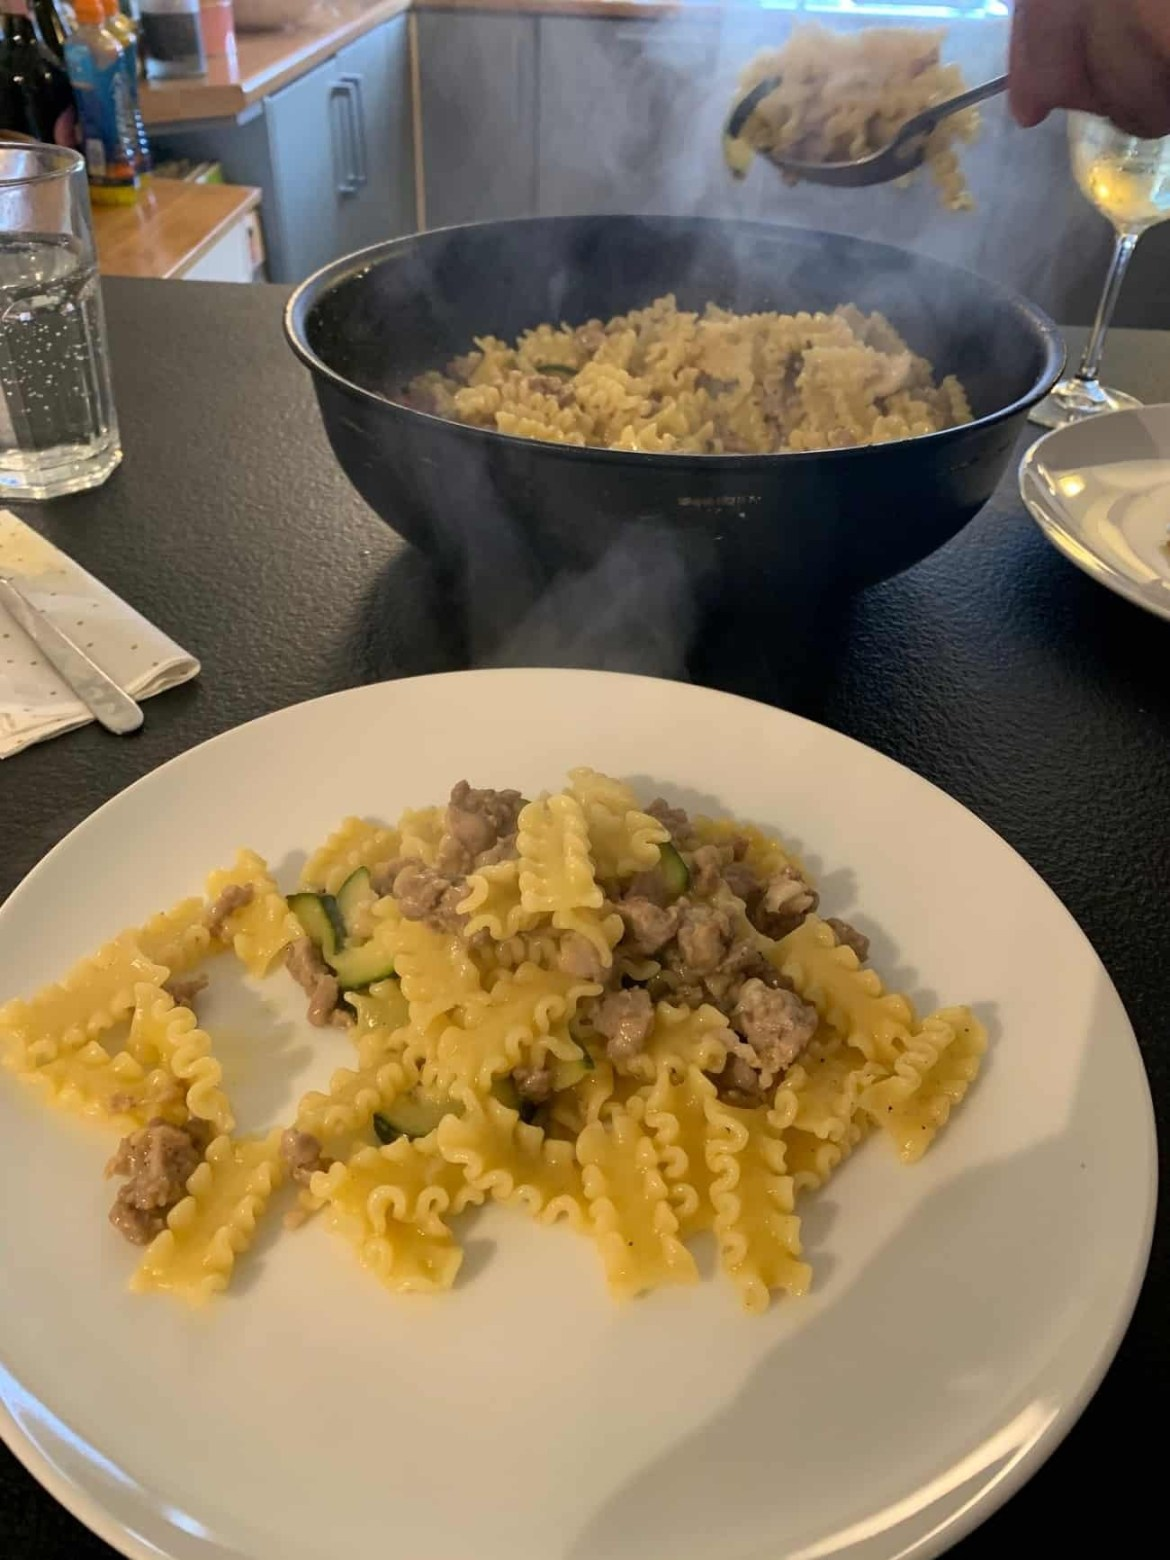 Pasta with sausage for Saturday lunch